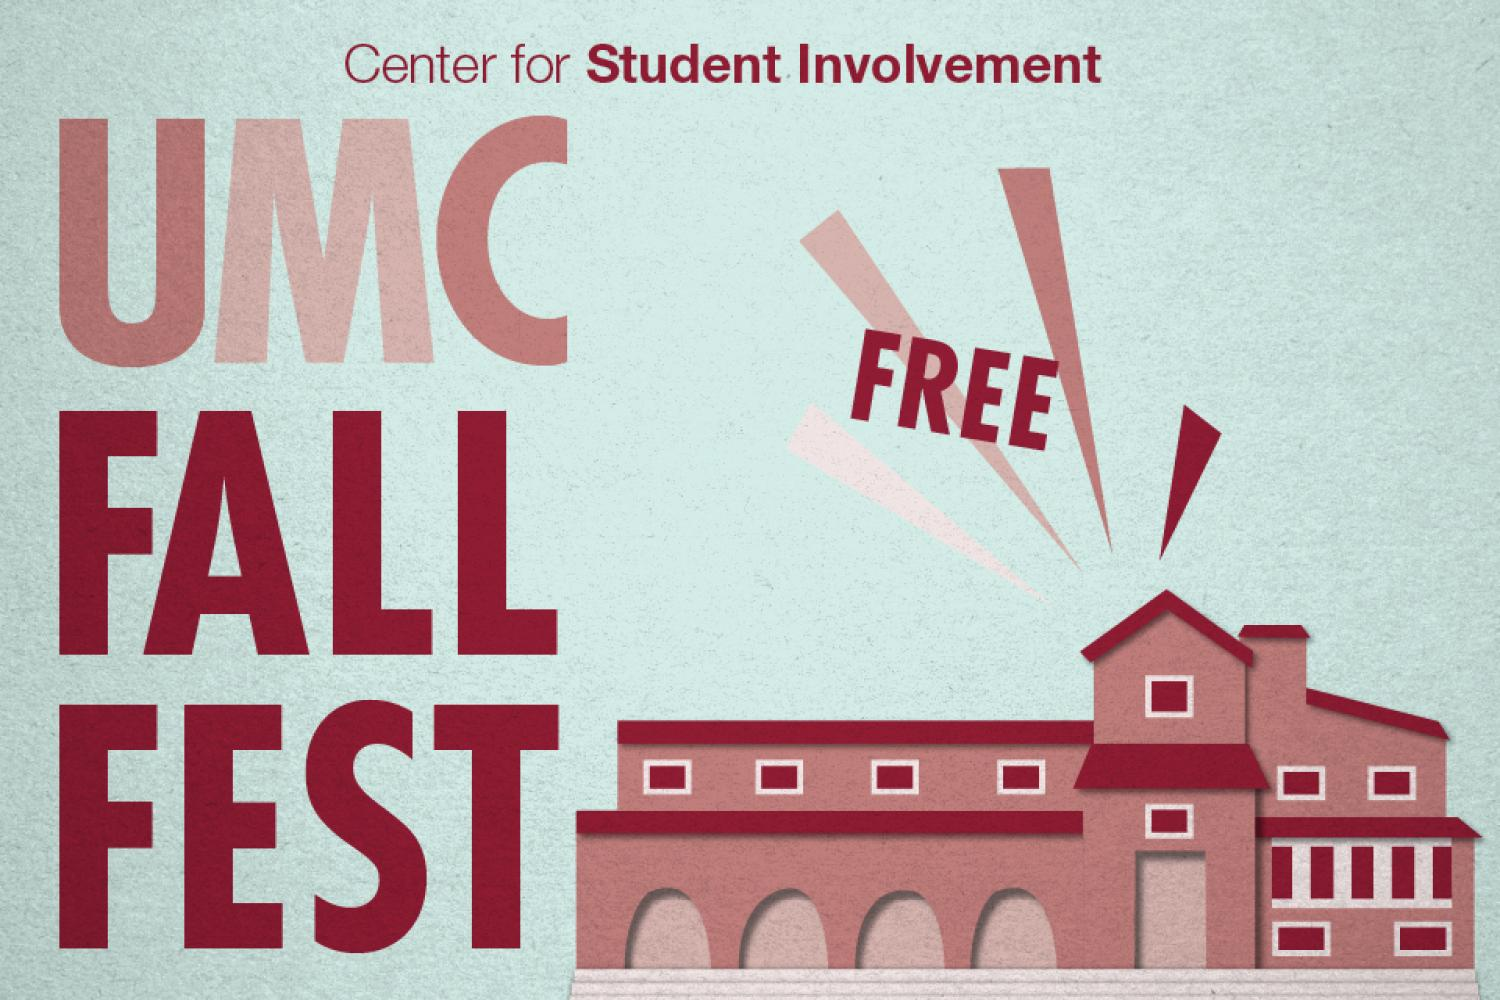 UMC Fall Fest is Friday, August 25 in the UMC from 7pm-11pm. It's free for CU students. There are fun activities, music and entertainment, food, and chances to win prizes.